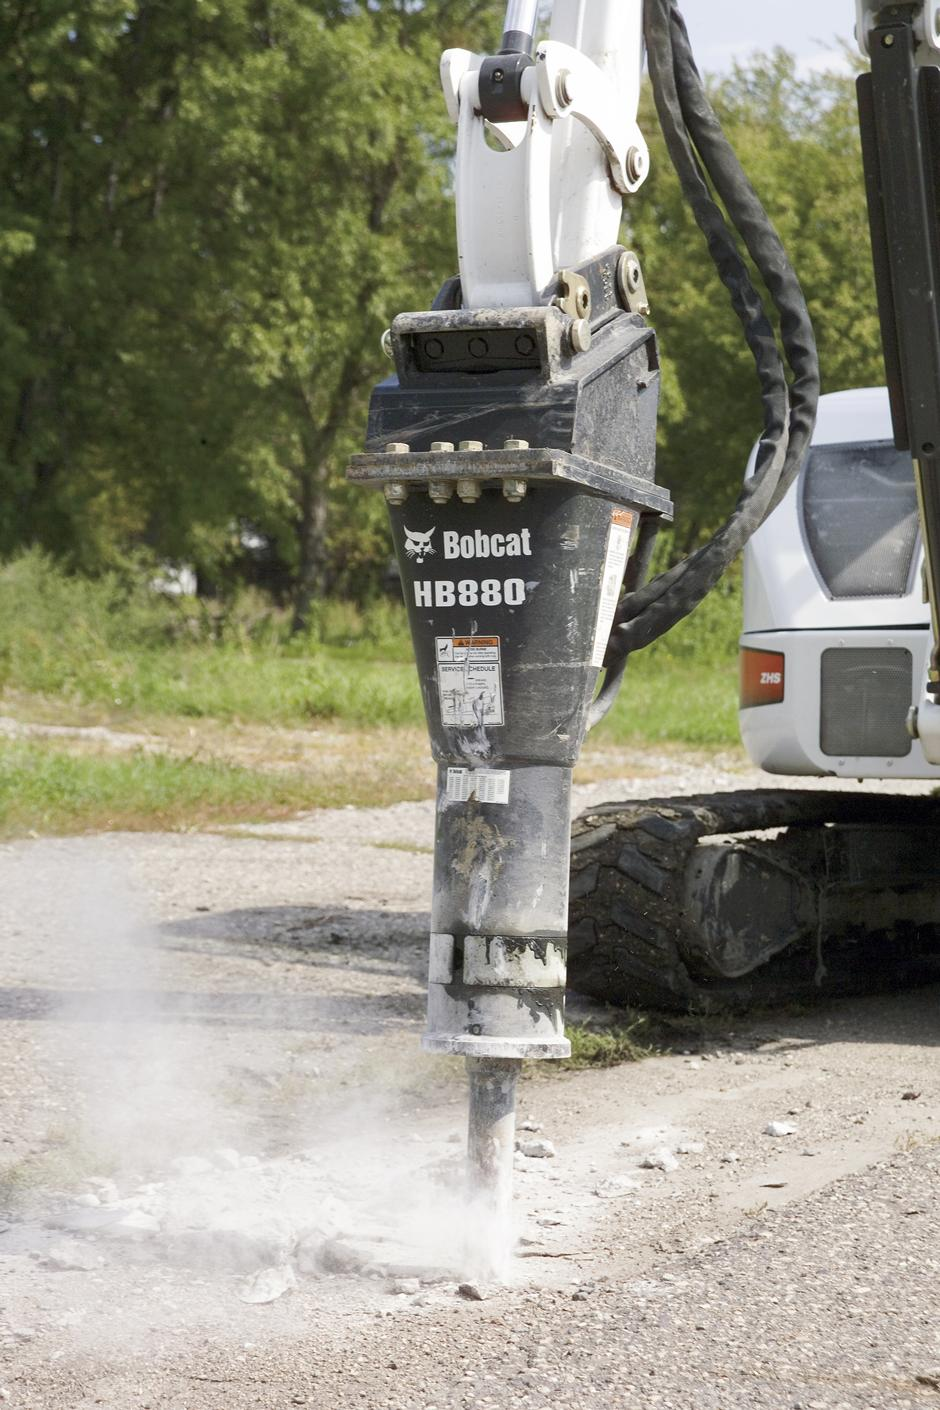 2019, Bobcat, HB980 Breaker with Nail Point, Hammer / Breaker Attachments